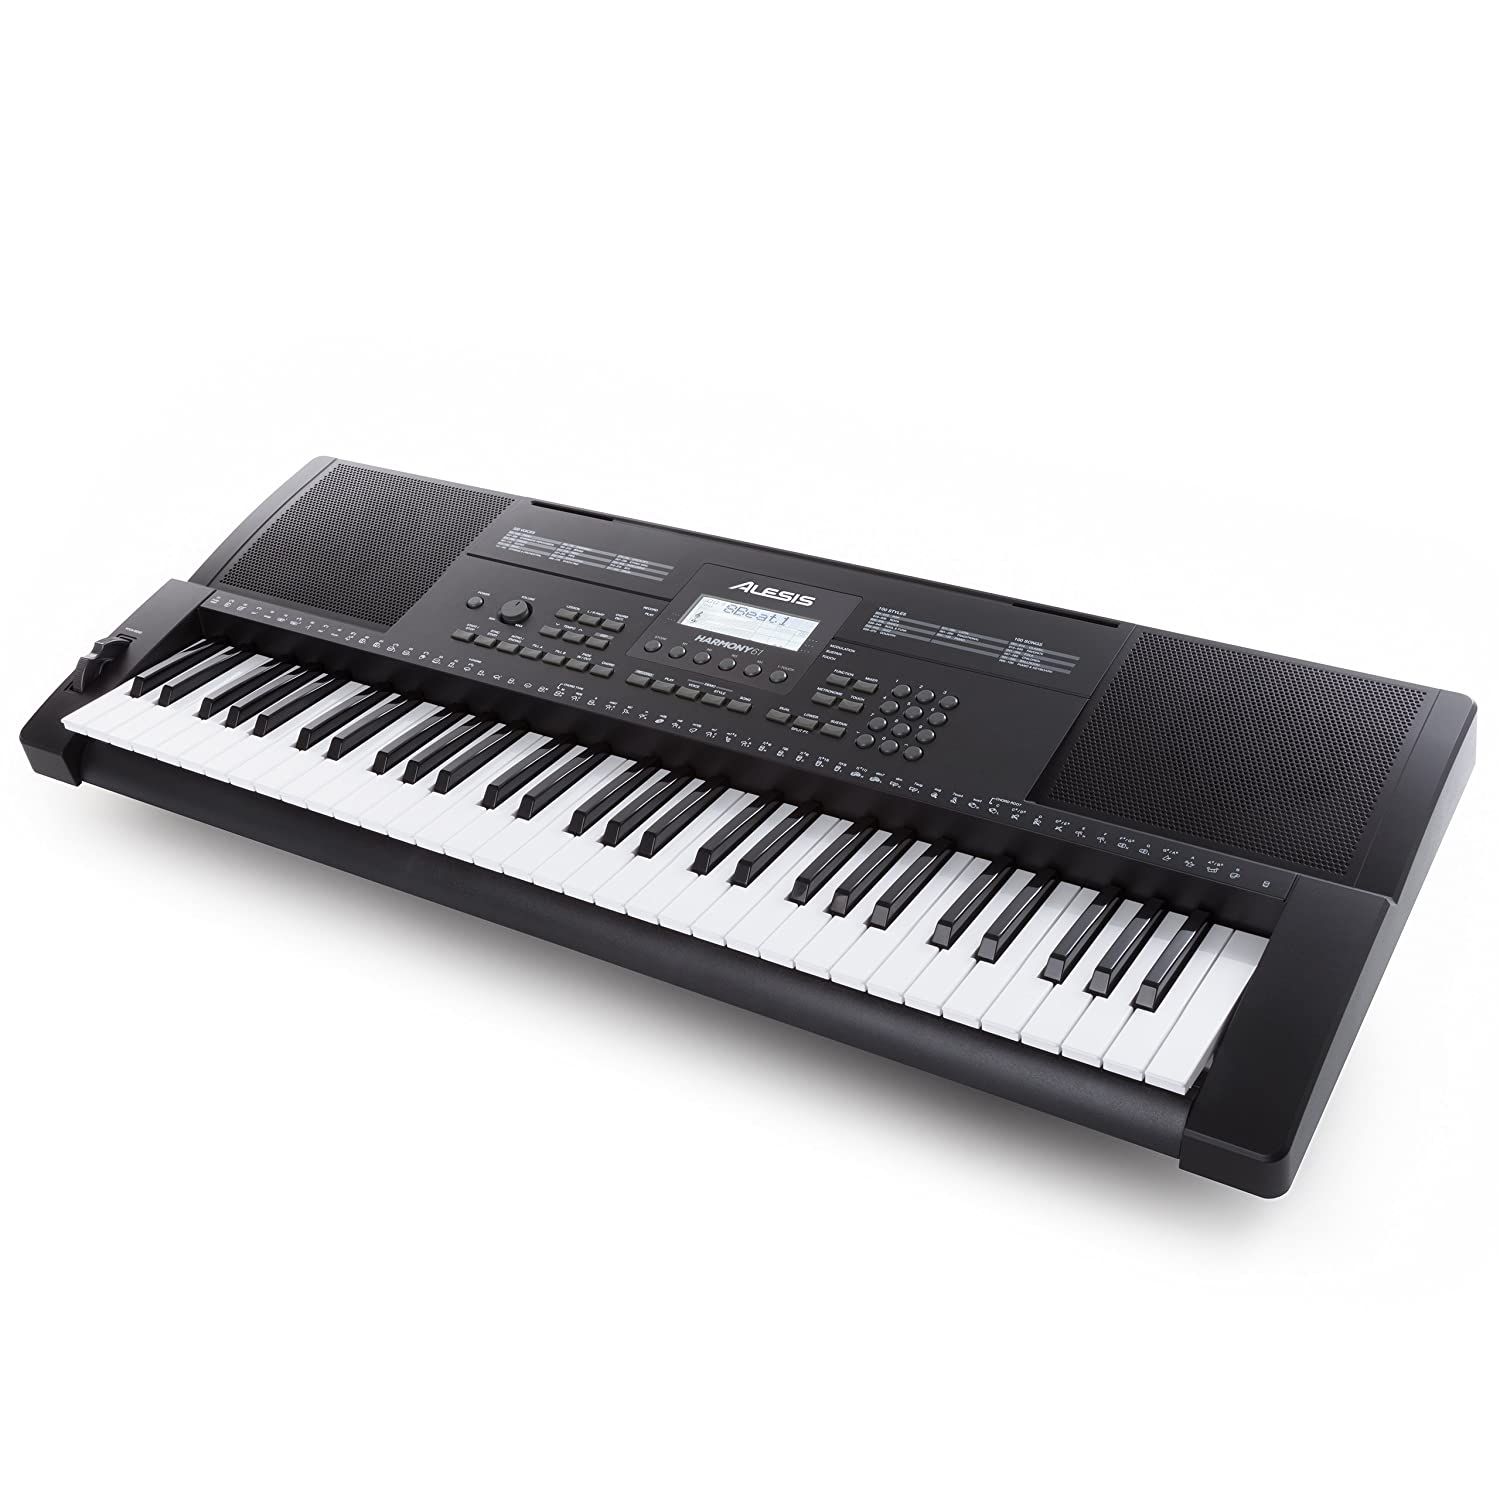 Alesis Harmony 61-61 Key Ultra-Portable Keyboard With Velocity-Sensitive Keys, Built-in Speakers, 300+ In-Demand Sounds and 3-Month Skoove Premium Subscription inMusic Brands Inc. HARMONY61XUS